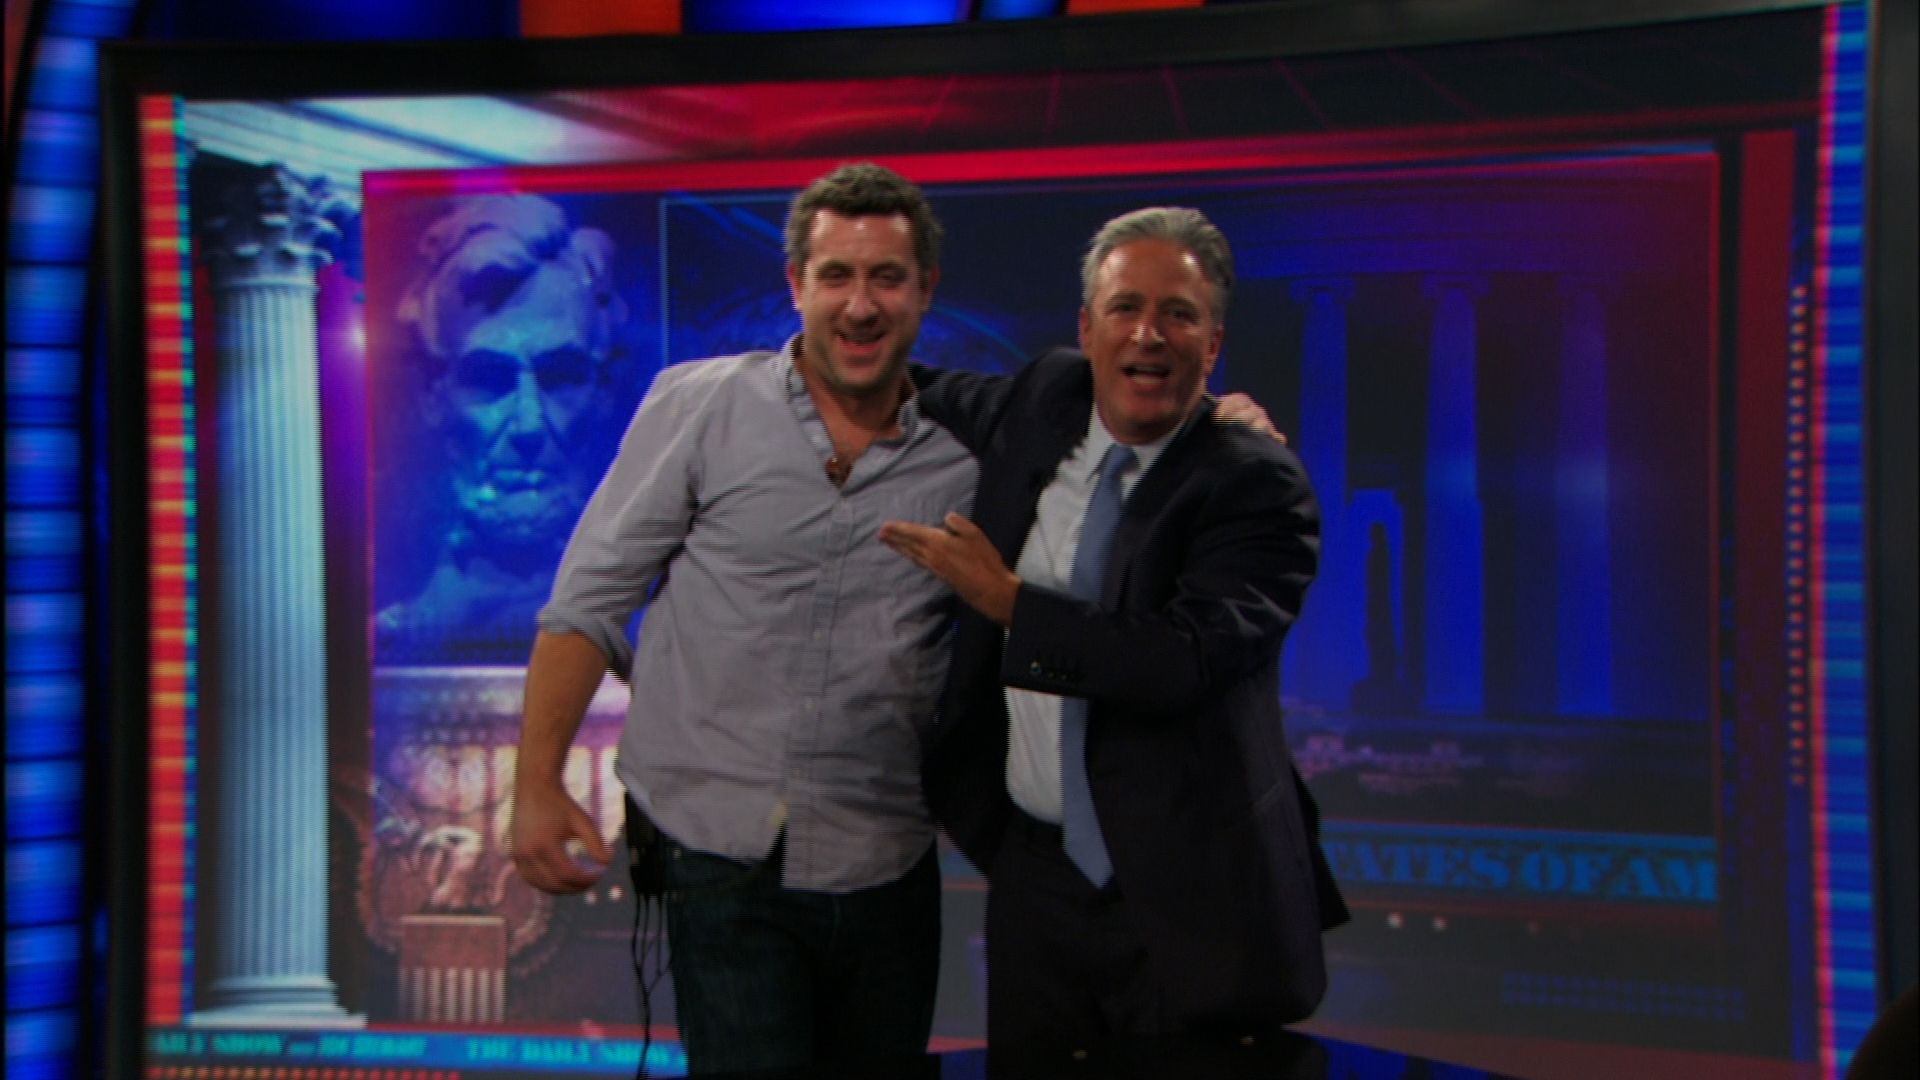 Moment of Zen - Rory Albanese - The Daily Show with Jon Stewart ...